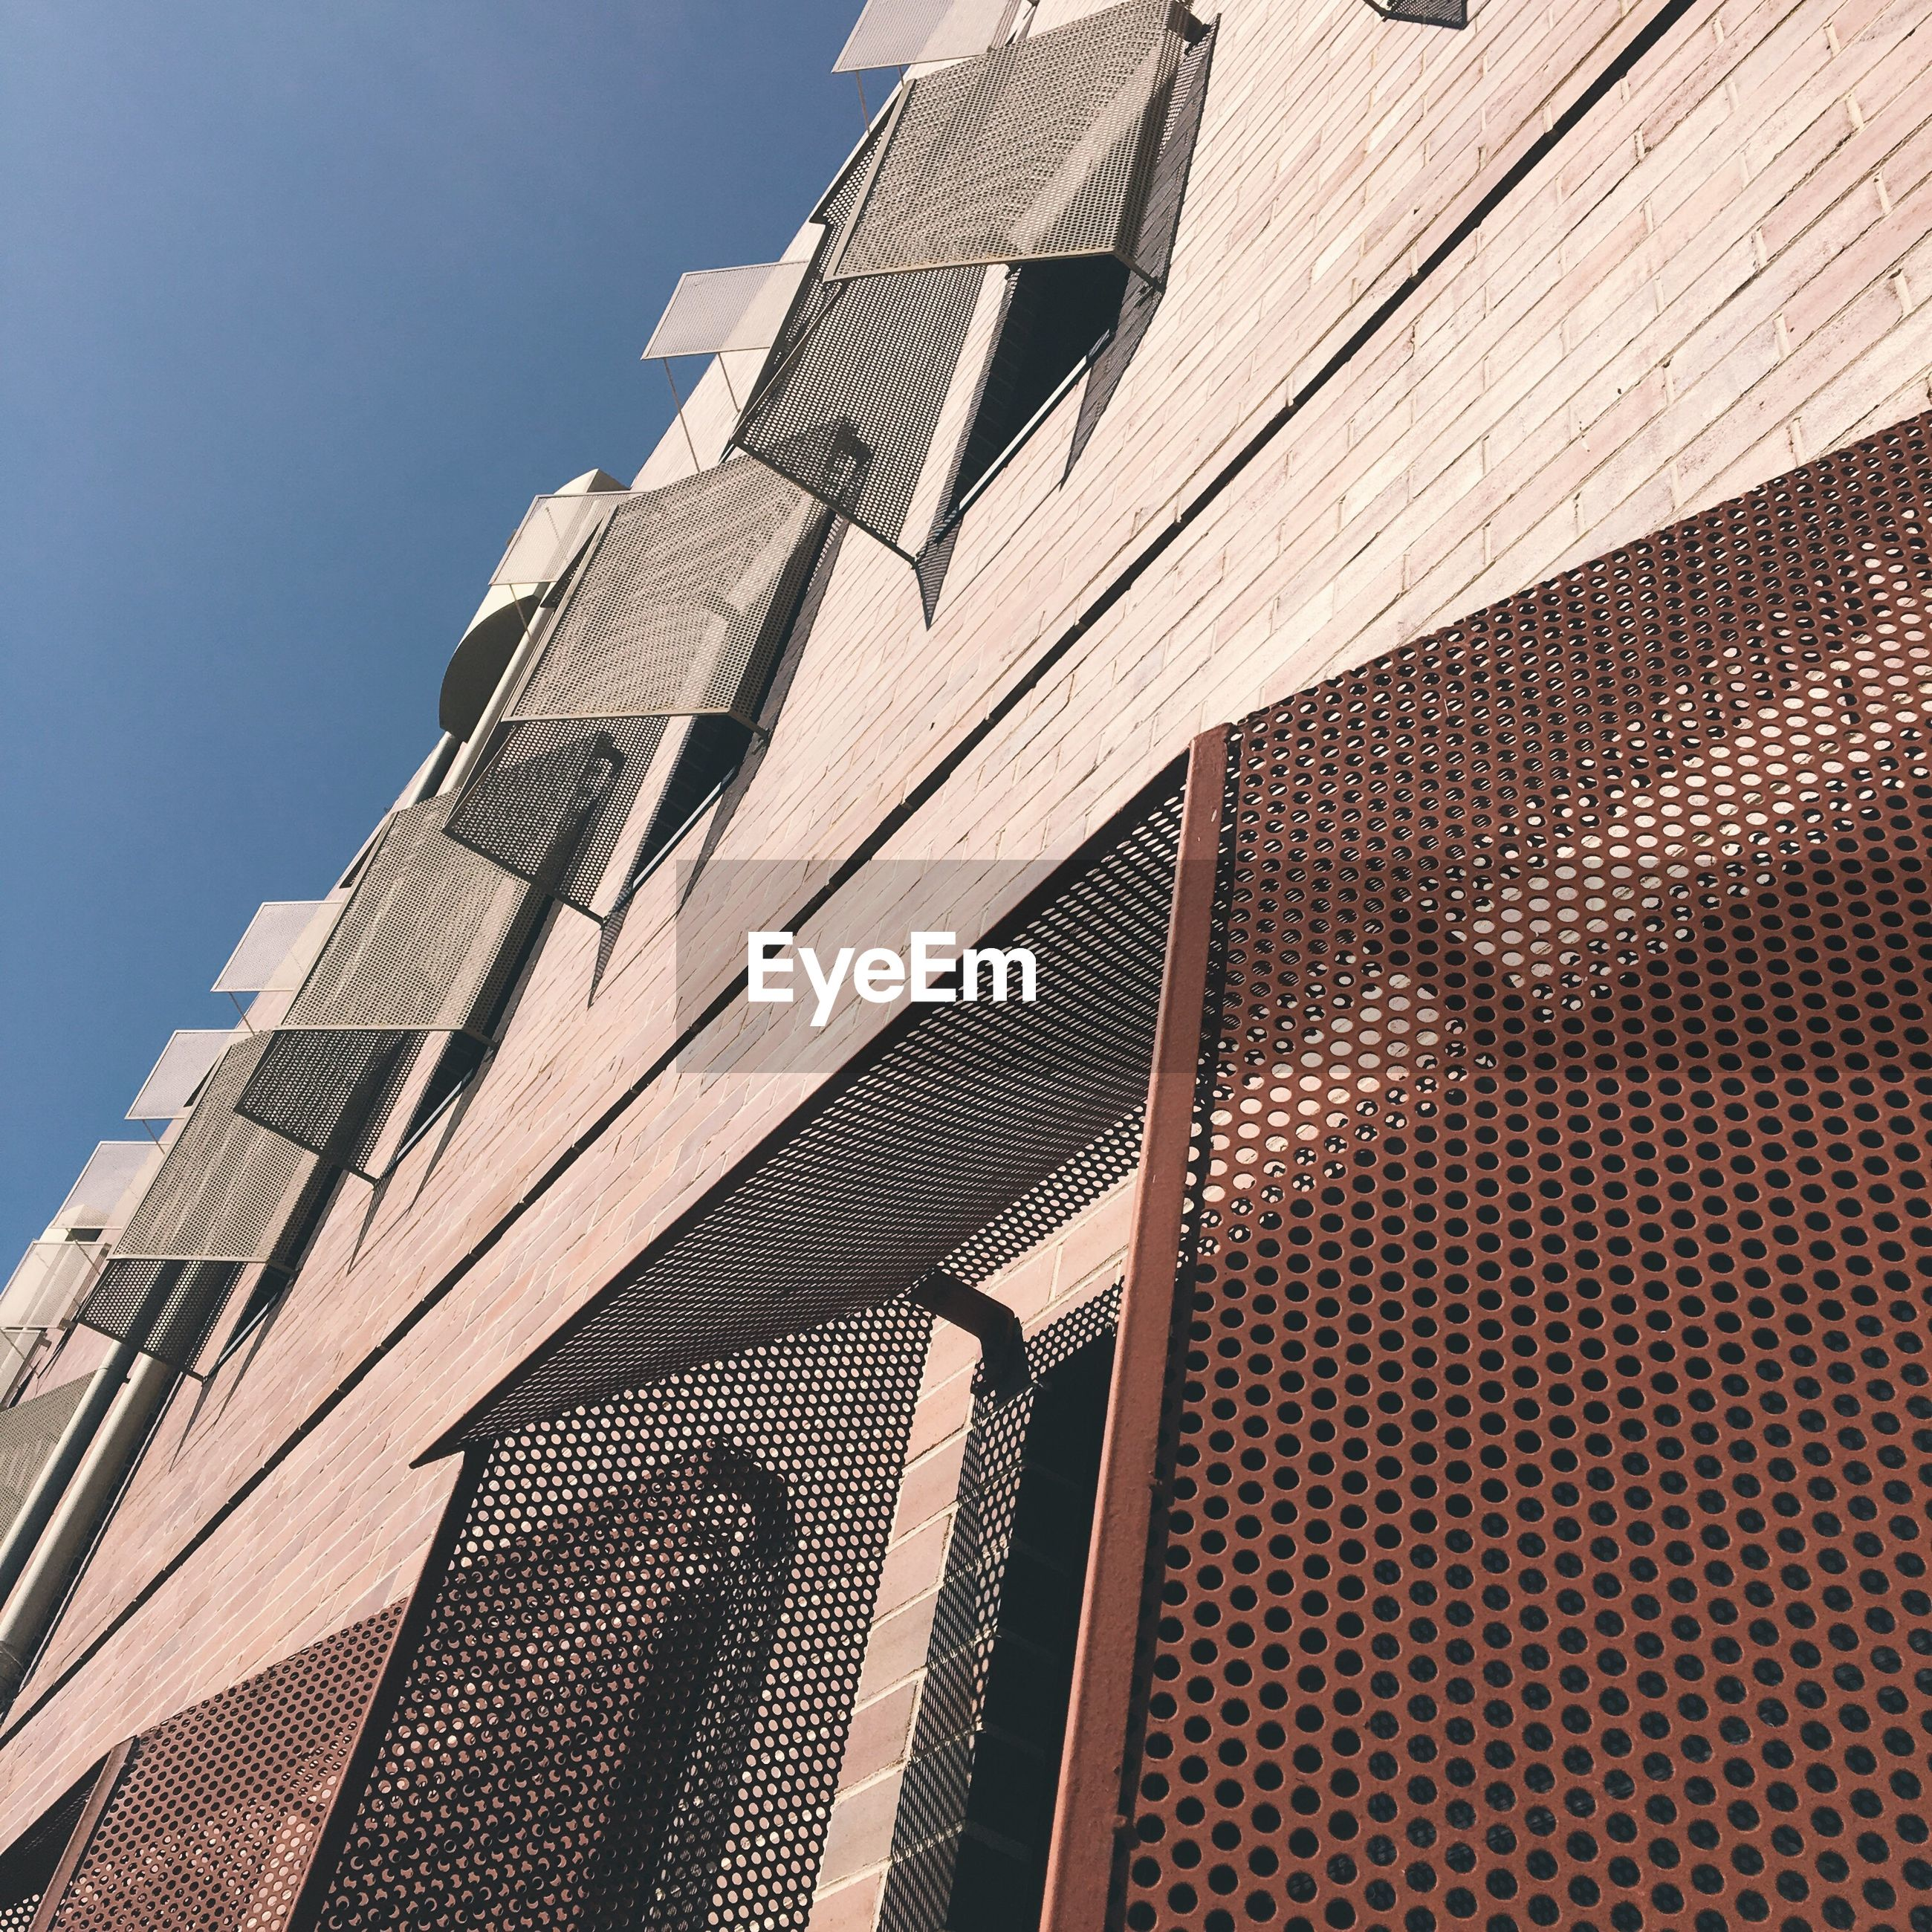 architecture, low angle view, built structure, building exterior, brick wall, tall - high, skyscraper, city, tower, day, blue, outdoors, architectural feature, tall, modern, sky, office building, no people, high section